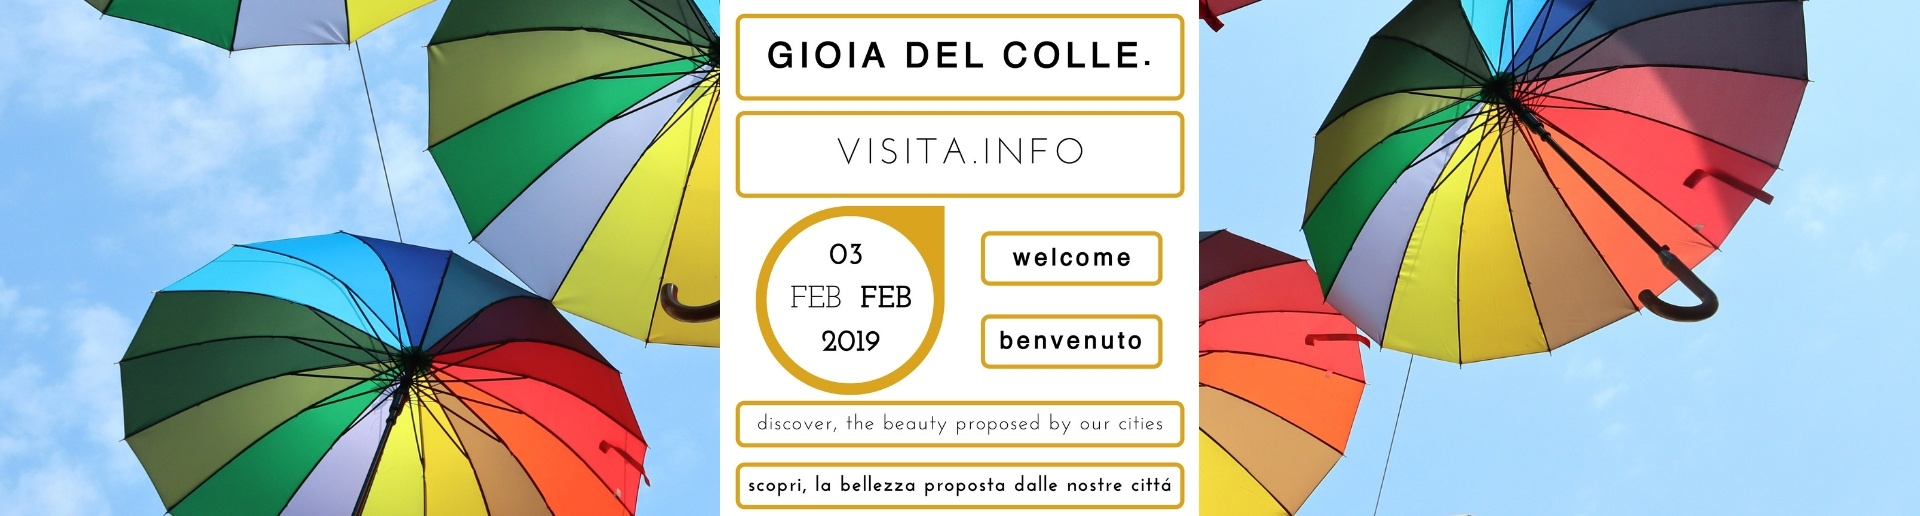 Sunday 3rd February 2019: plan your visit to Gioia del Colle (Bari, Puglia, Italy)